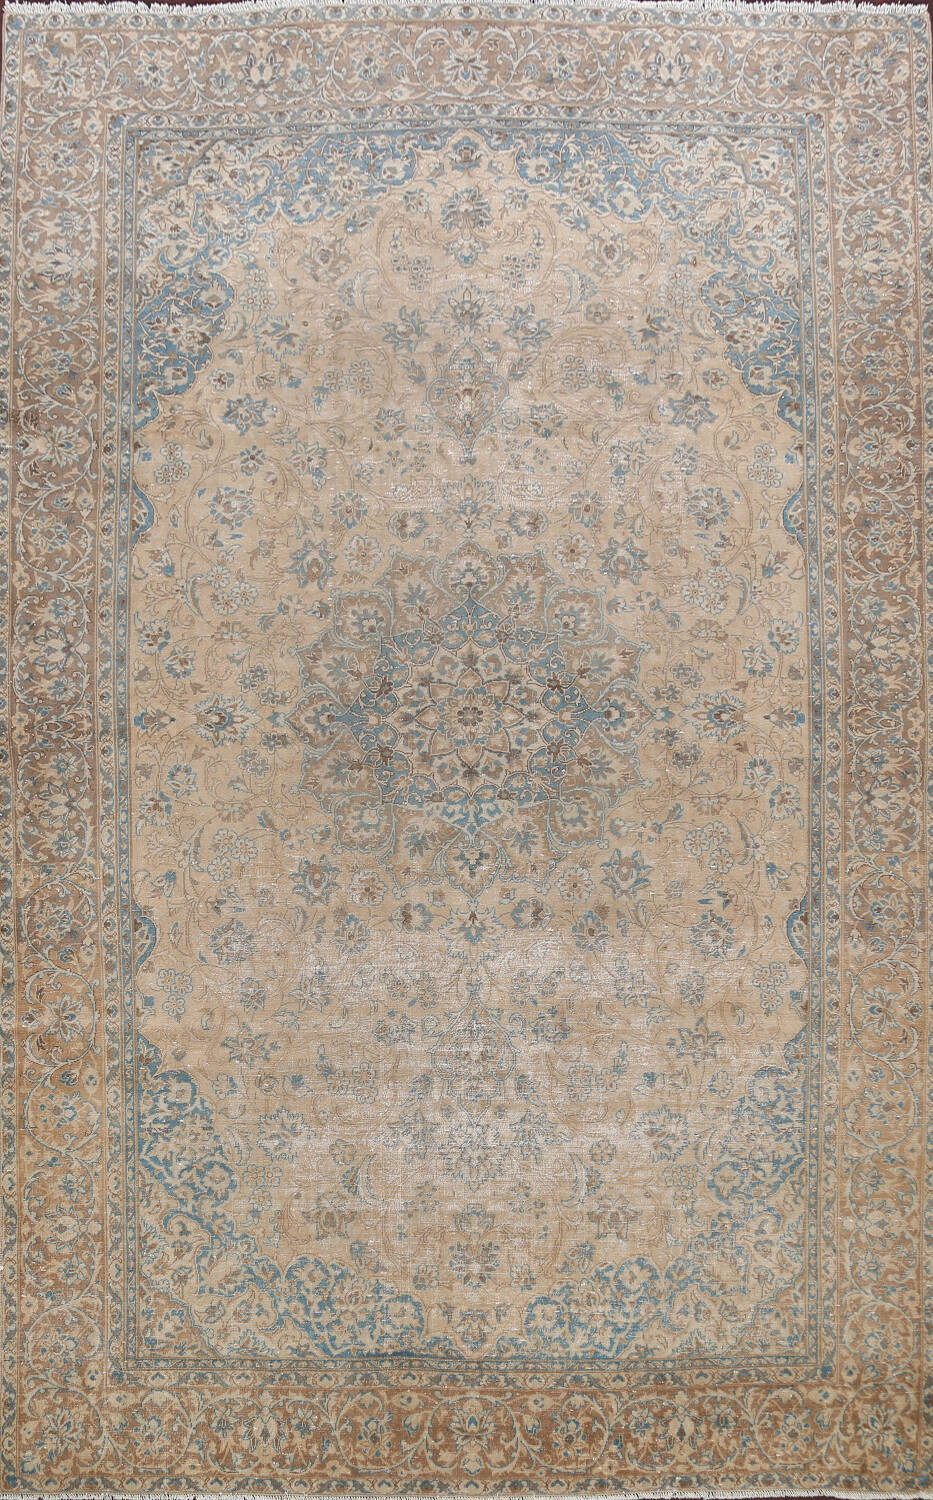 Antique Muted Floral Mashad Persian Area Rug 9x13 image 1